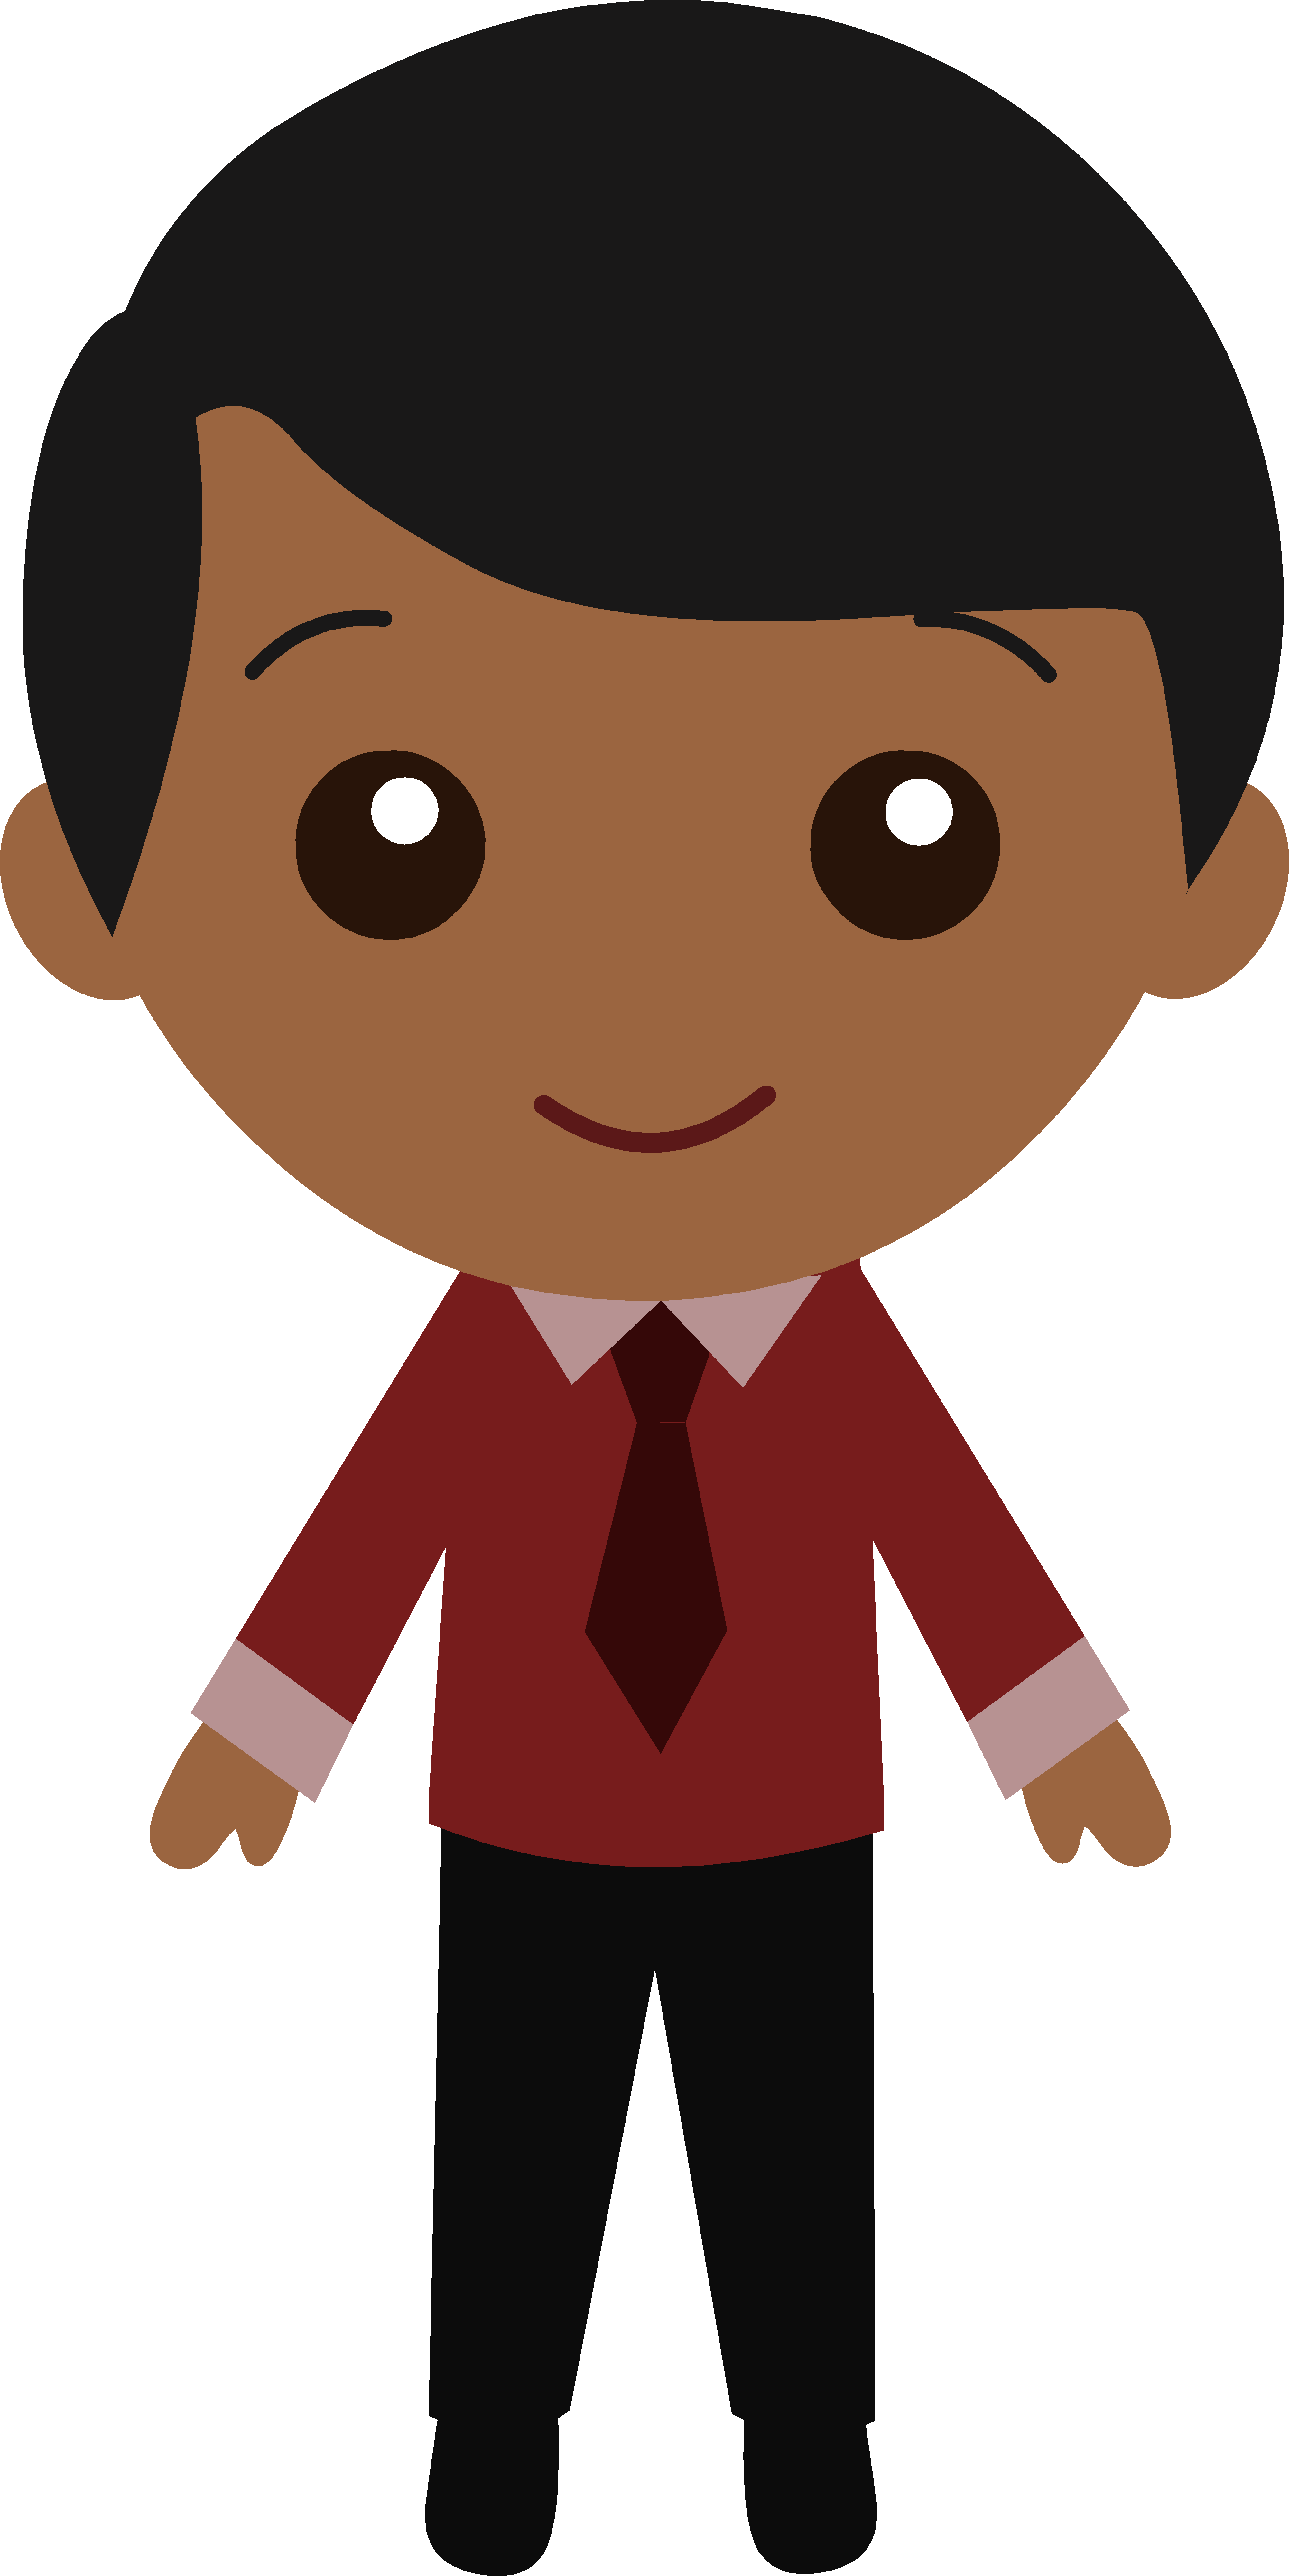 Indian boy clipart clipart library stock Free Cartoon Black Boy, Download Free Clip Art, Free Clip Art on ... clipart library stock